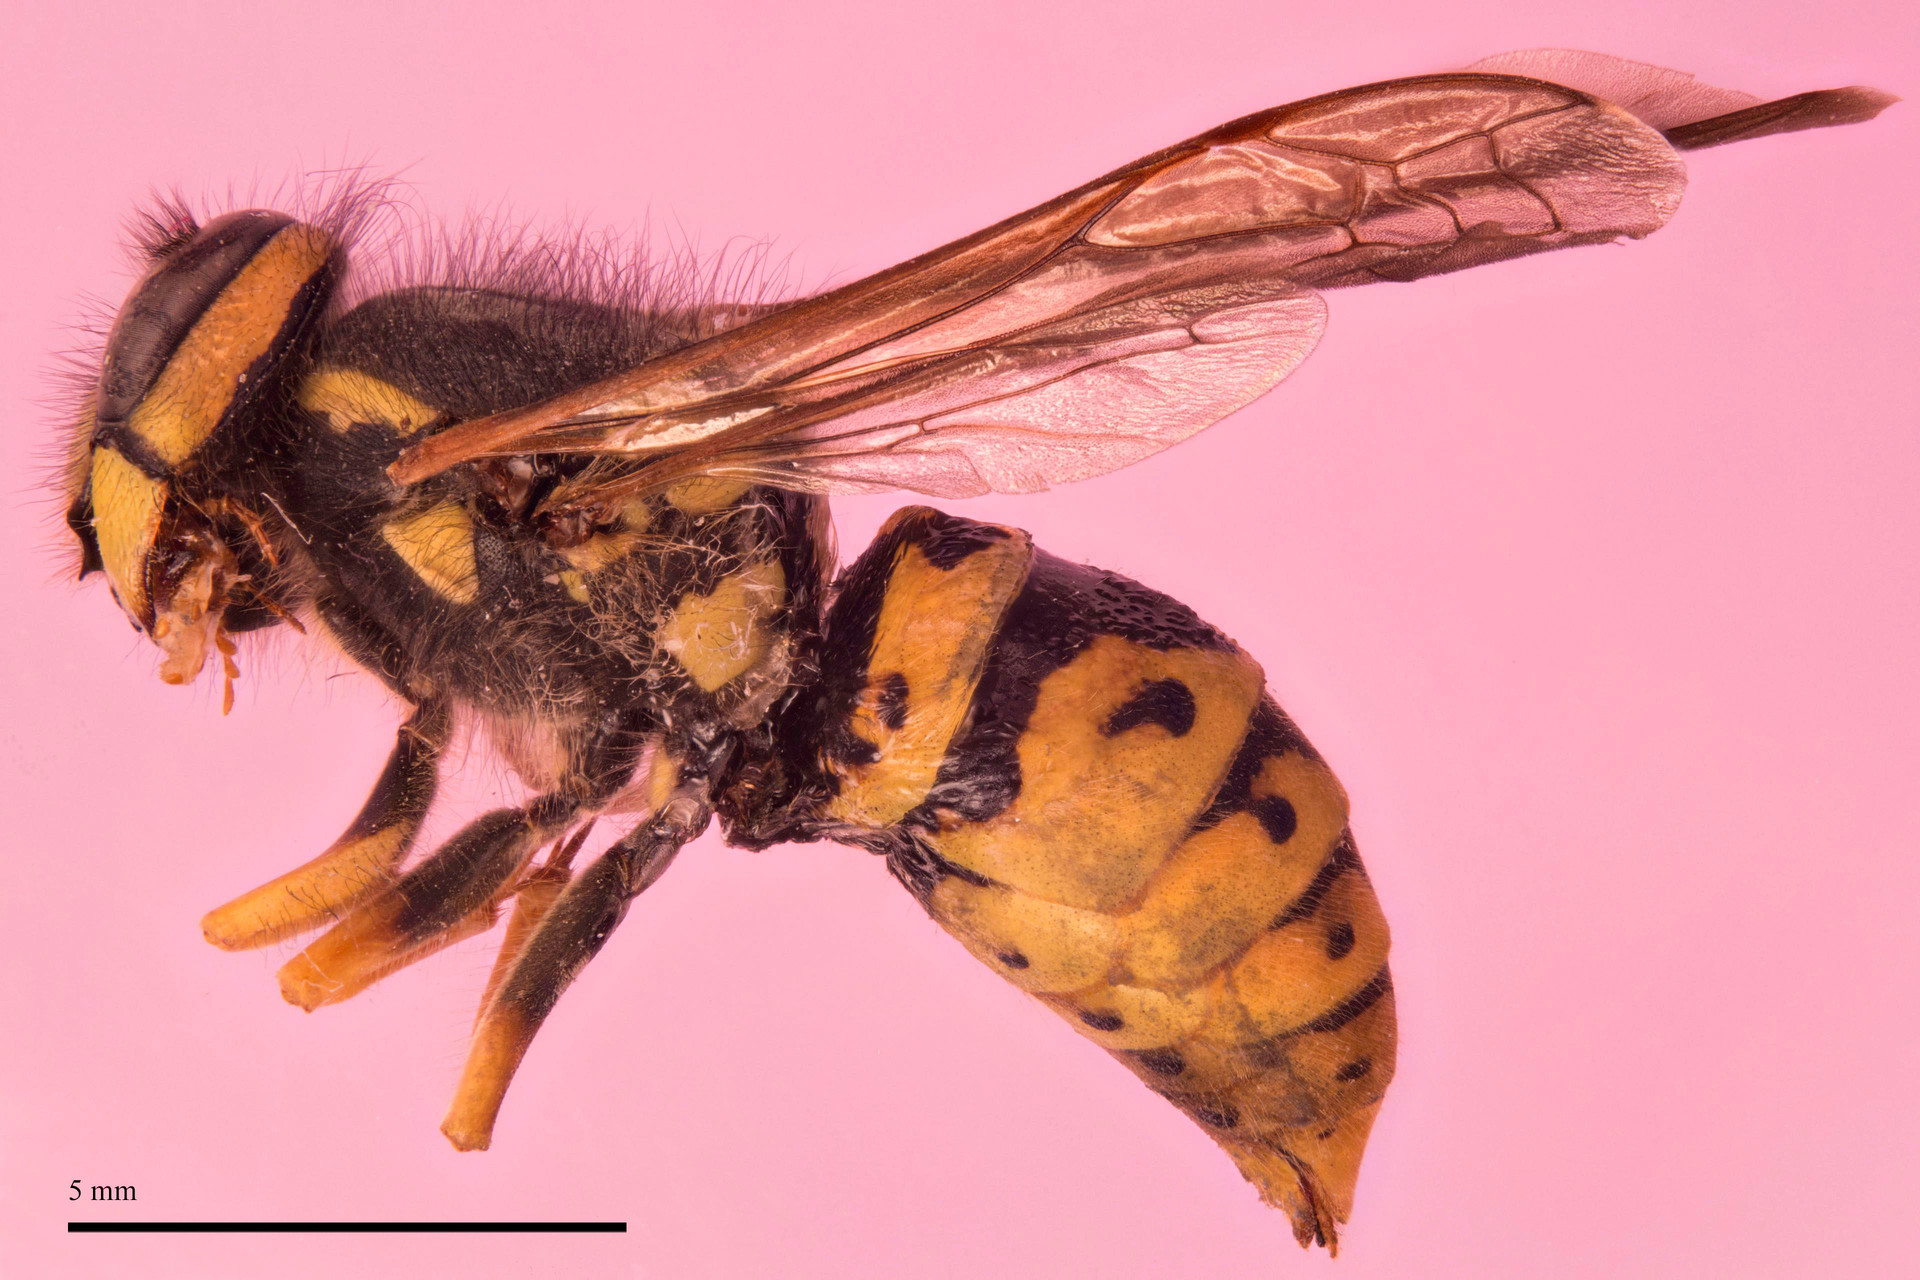 High mag image of a yellow jacket